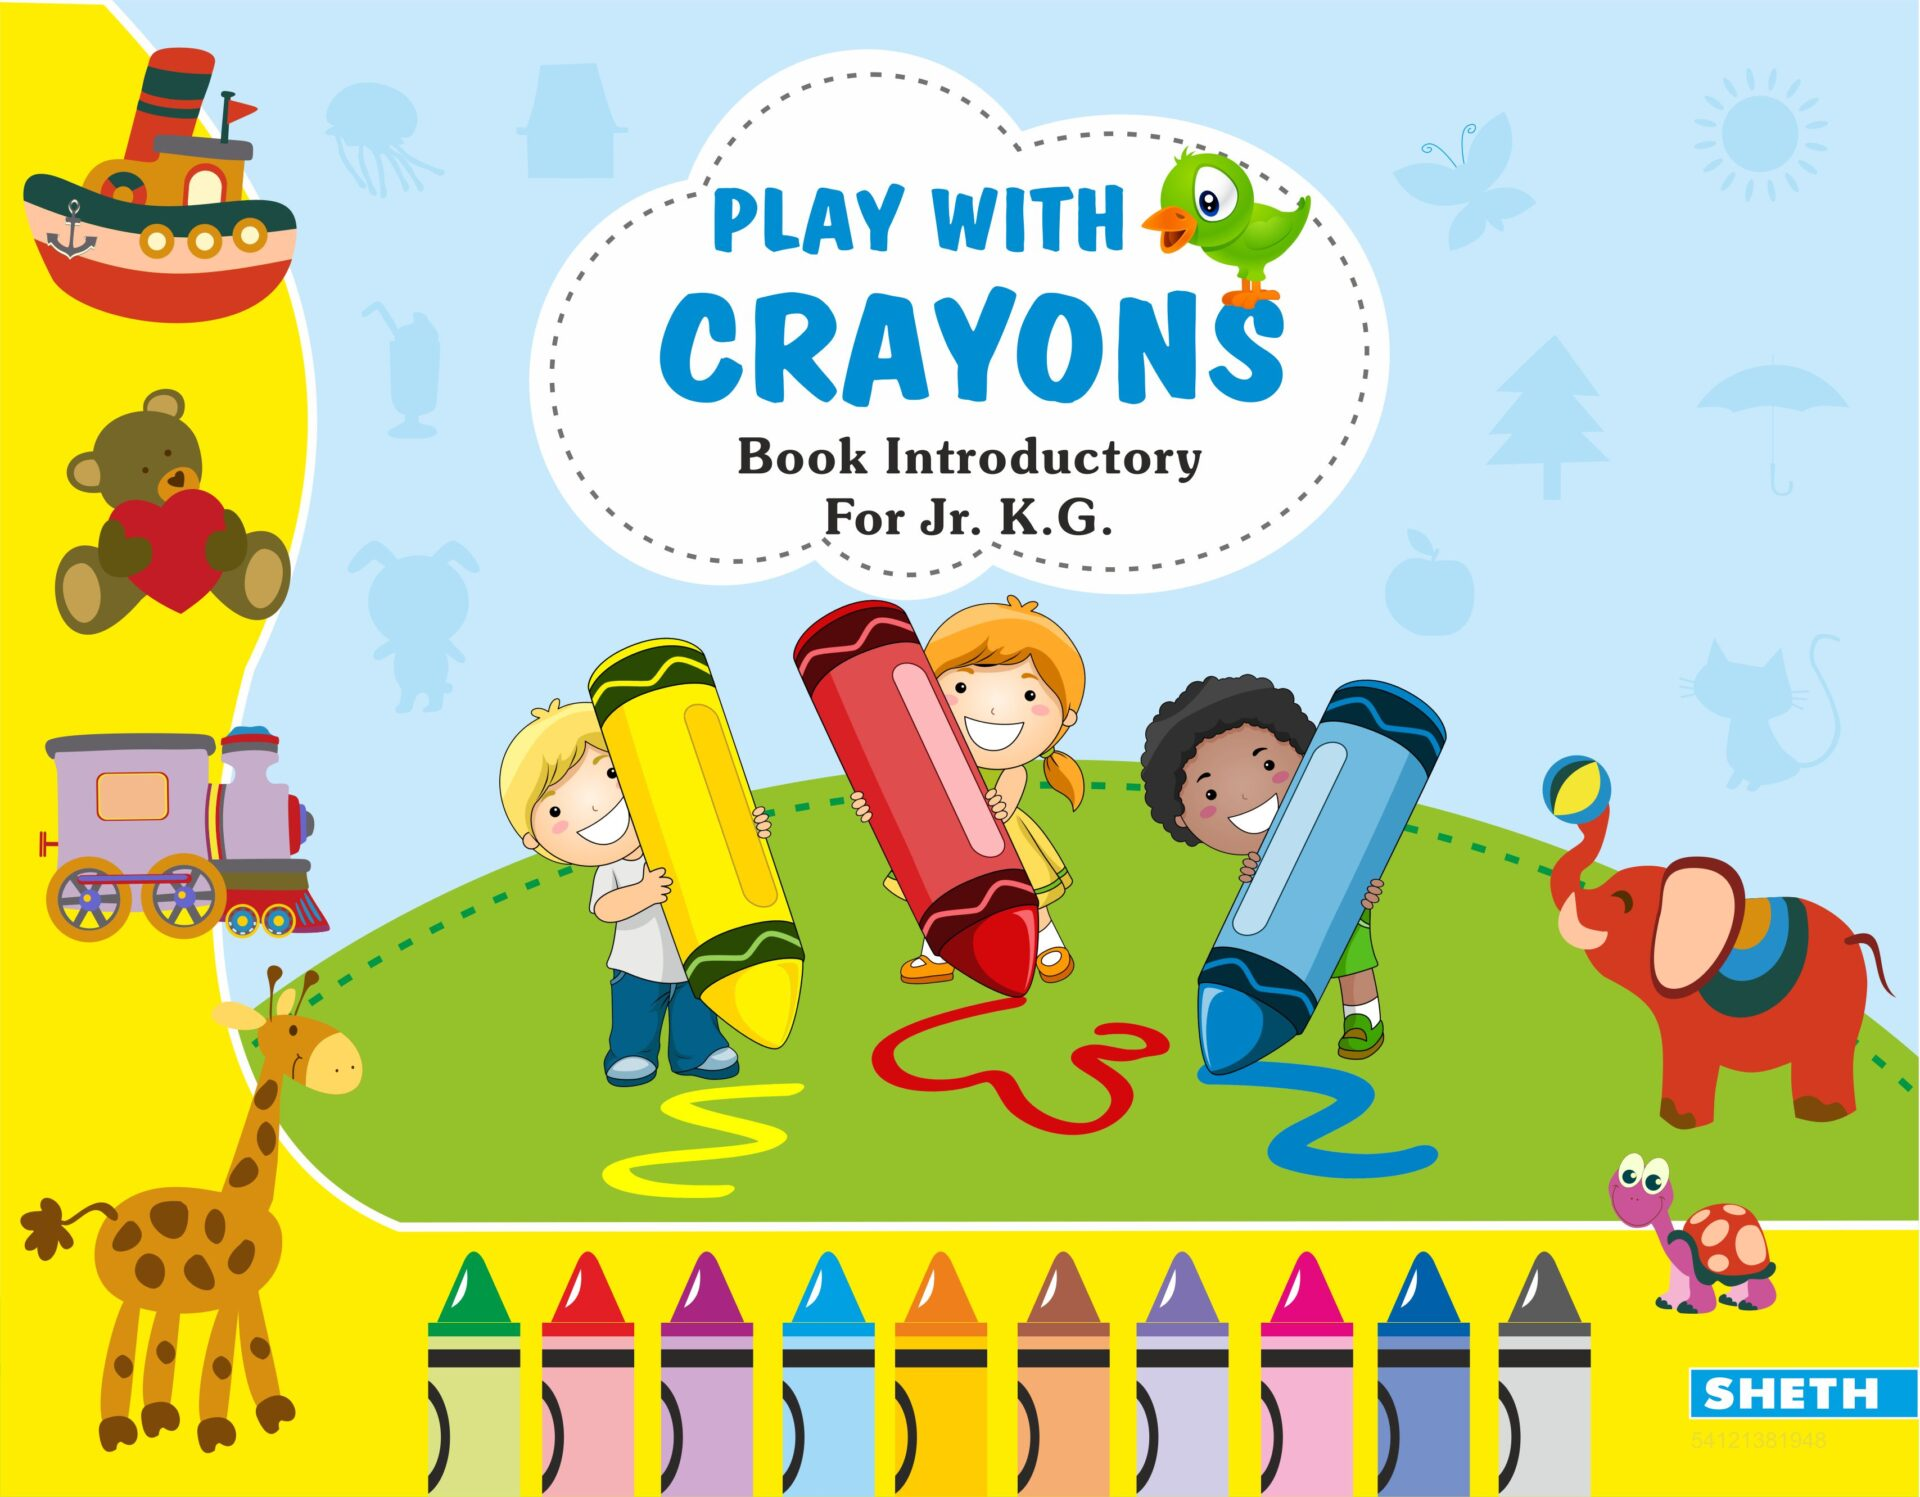 Sheth Books Play with Crayons Book Introductory for Jr. K.G 1